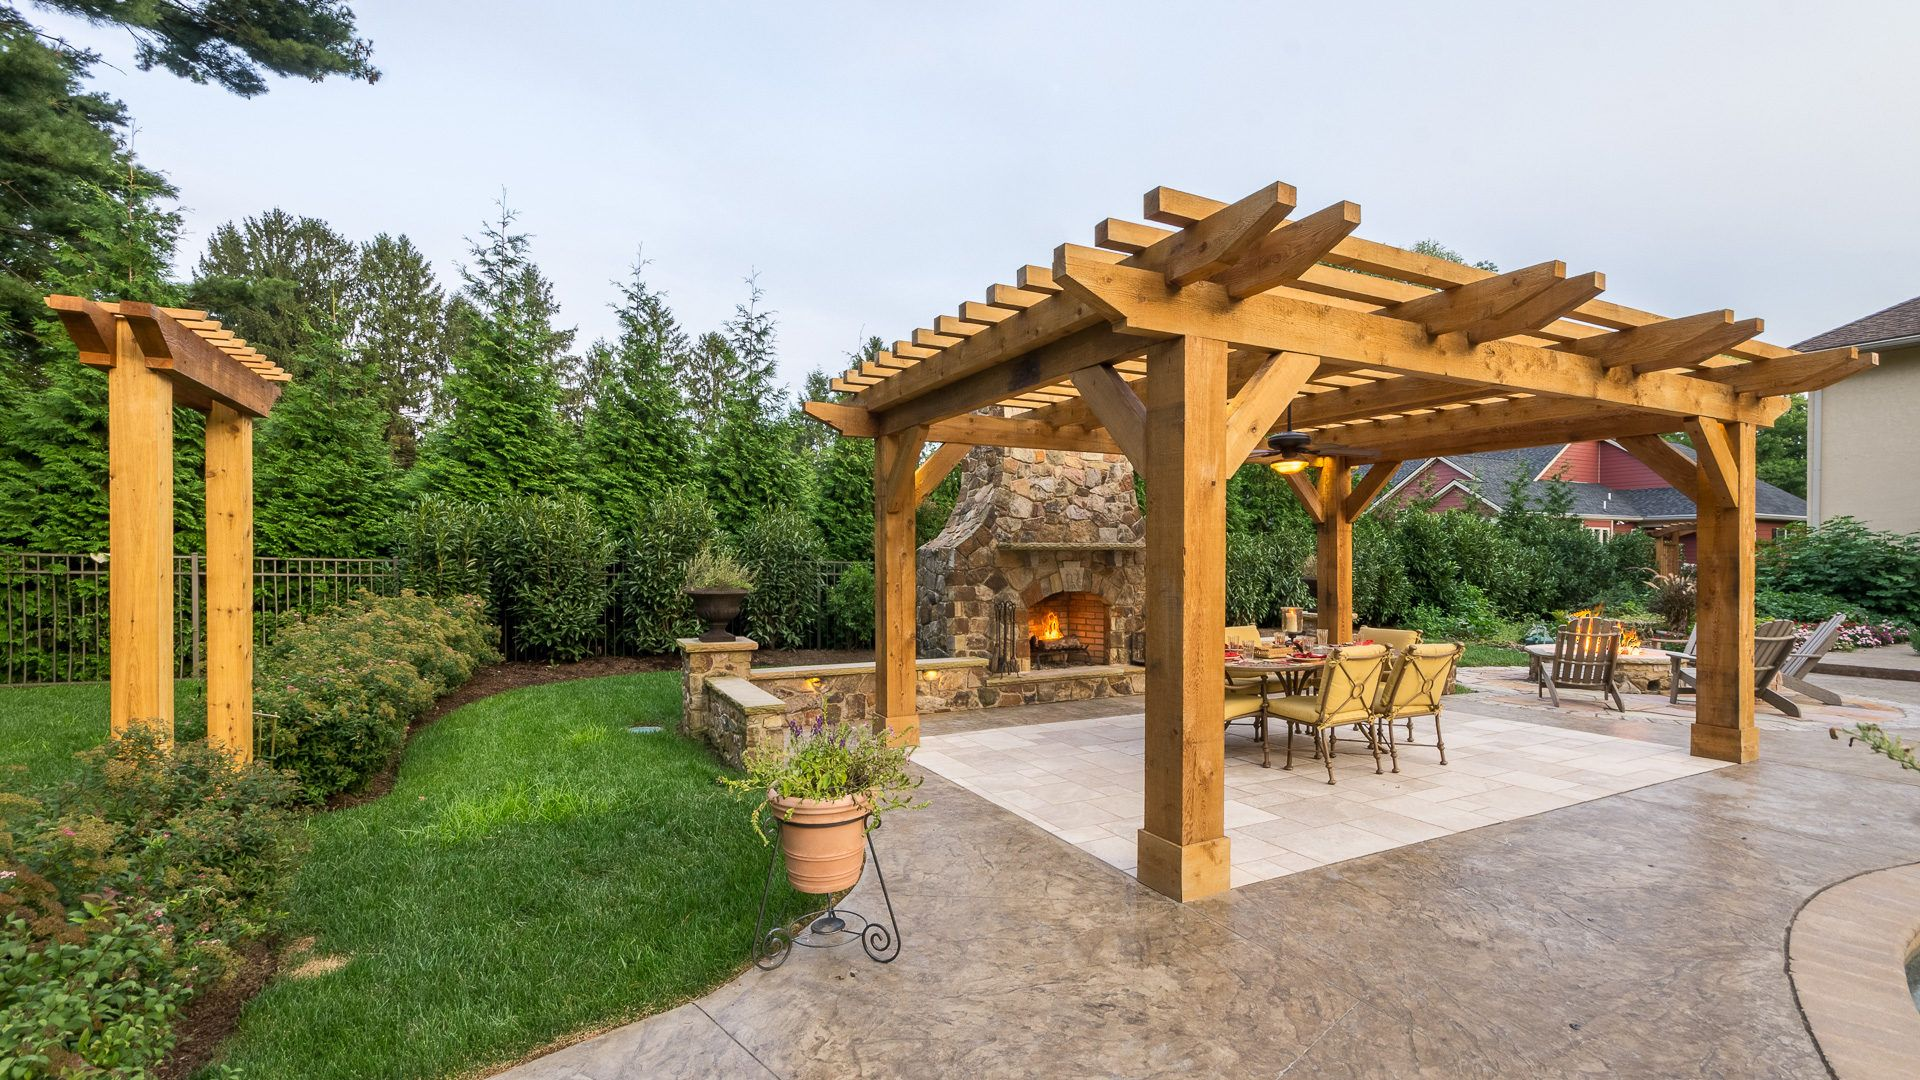 Deck Design & Remodeling | Deck design, Outdoor structures ... on Disabatino Outdoor Living id=79579